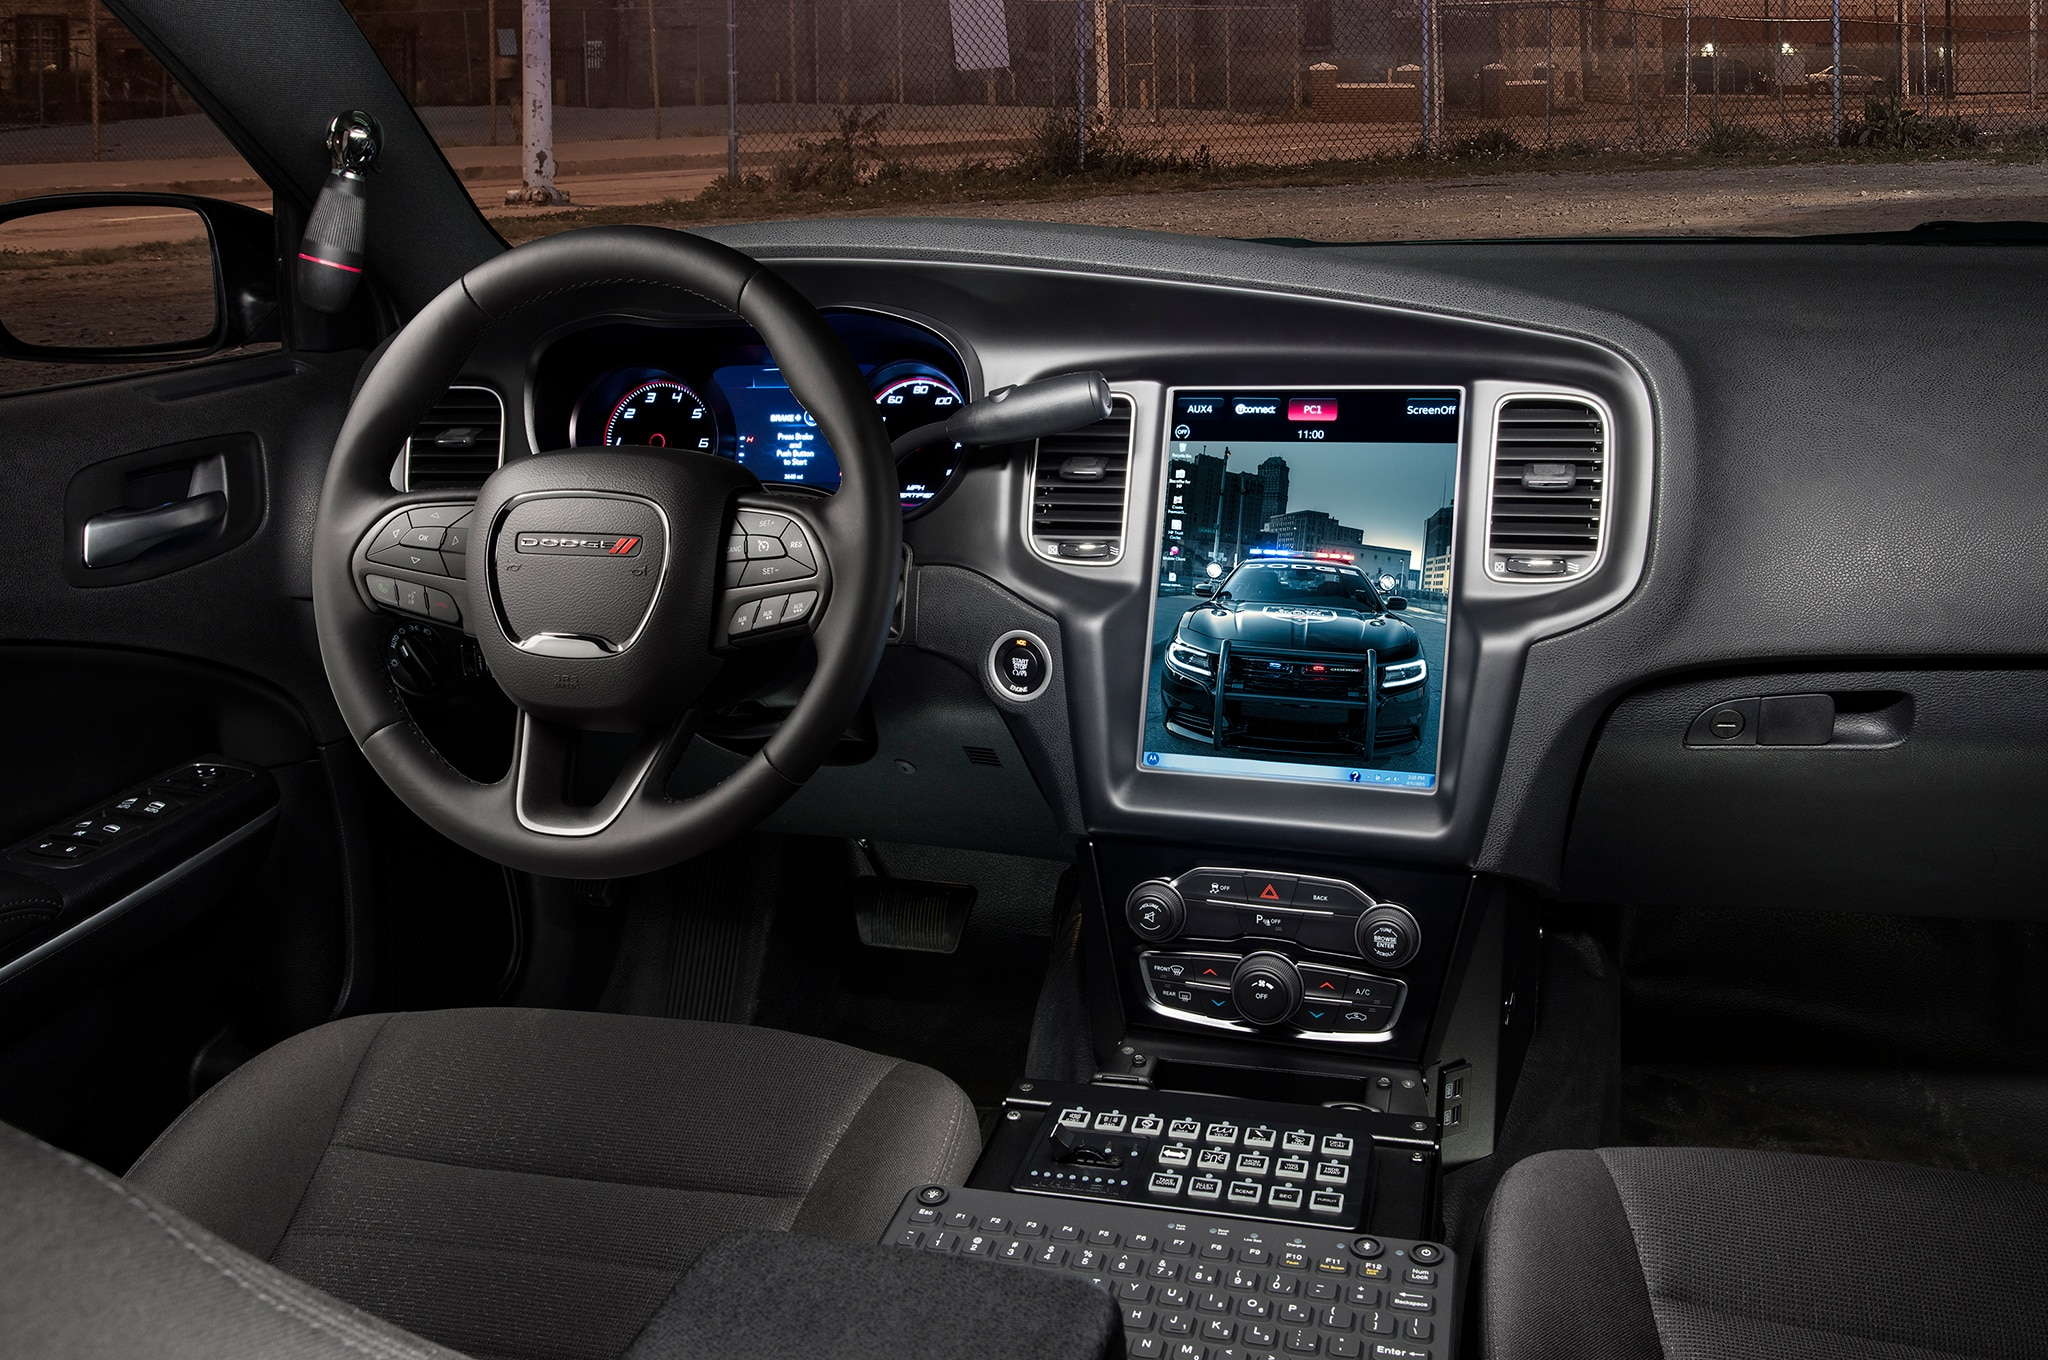 2017 Jeep Wrangler Mpg >> 2016 Dodge Charger Pursuit Adds 12.1-inch Touchscreen Computer